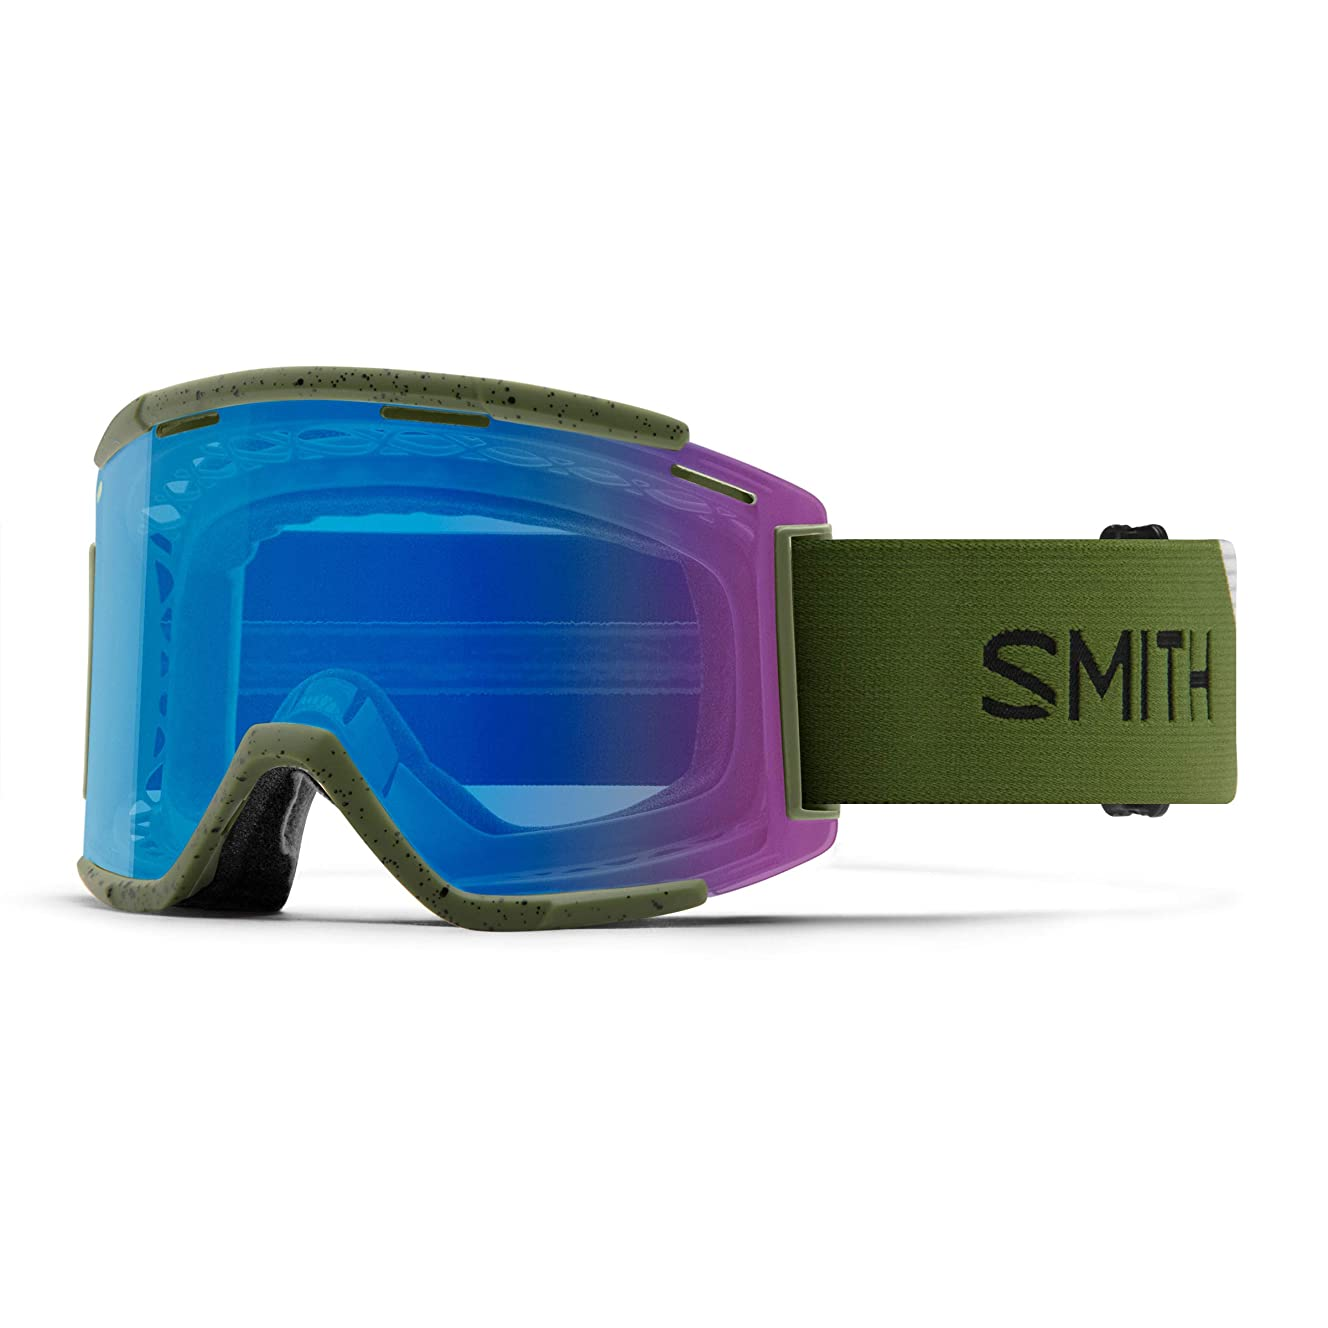 Smith Optics Squad XL Adult Off-Road Cycling Goggles - Moss/ChromaPop Contrast Rose/One Size